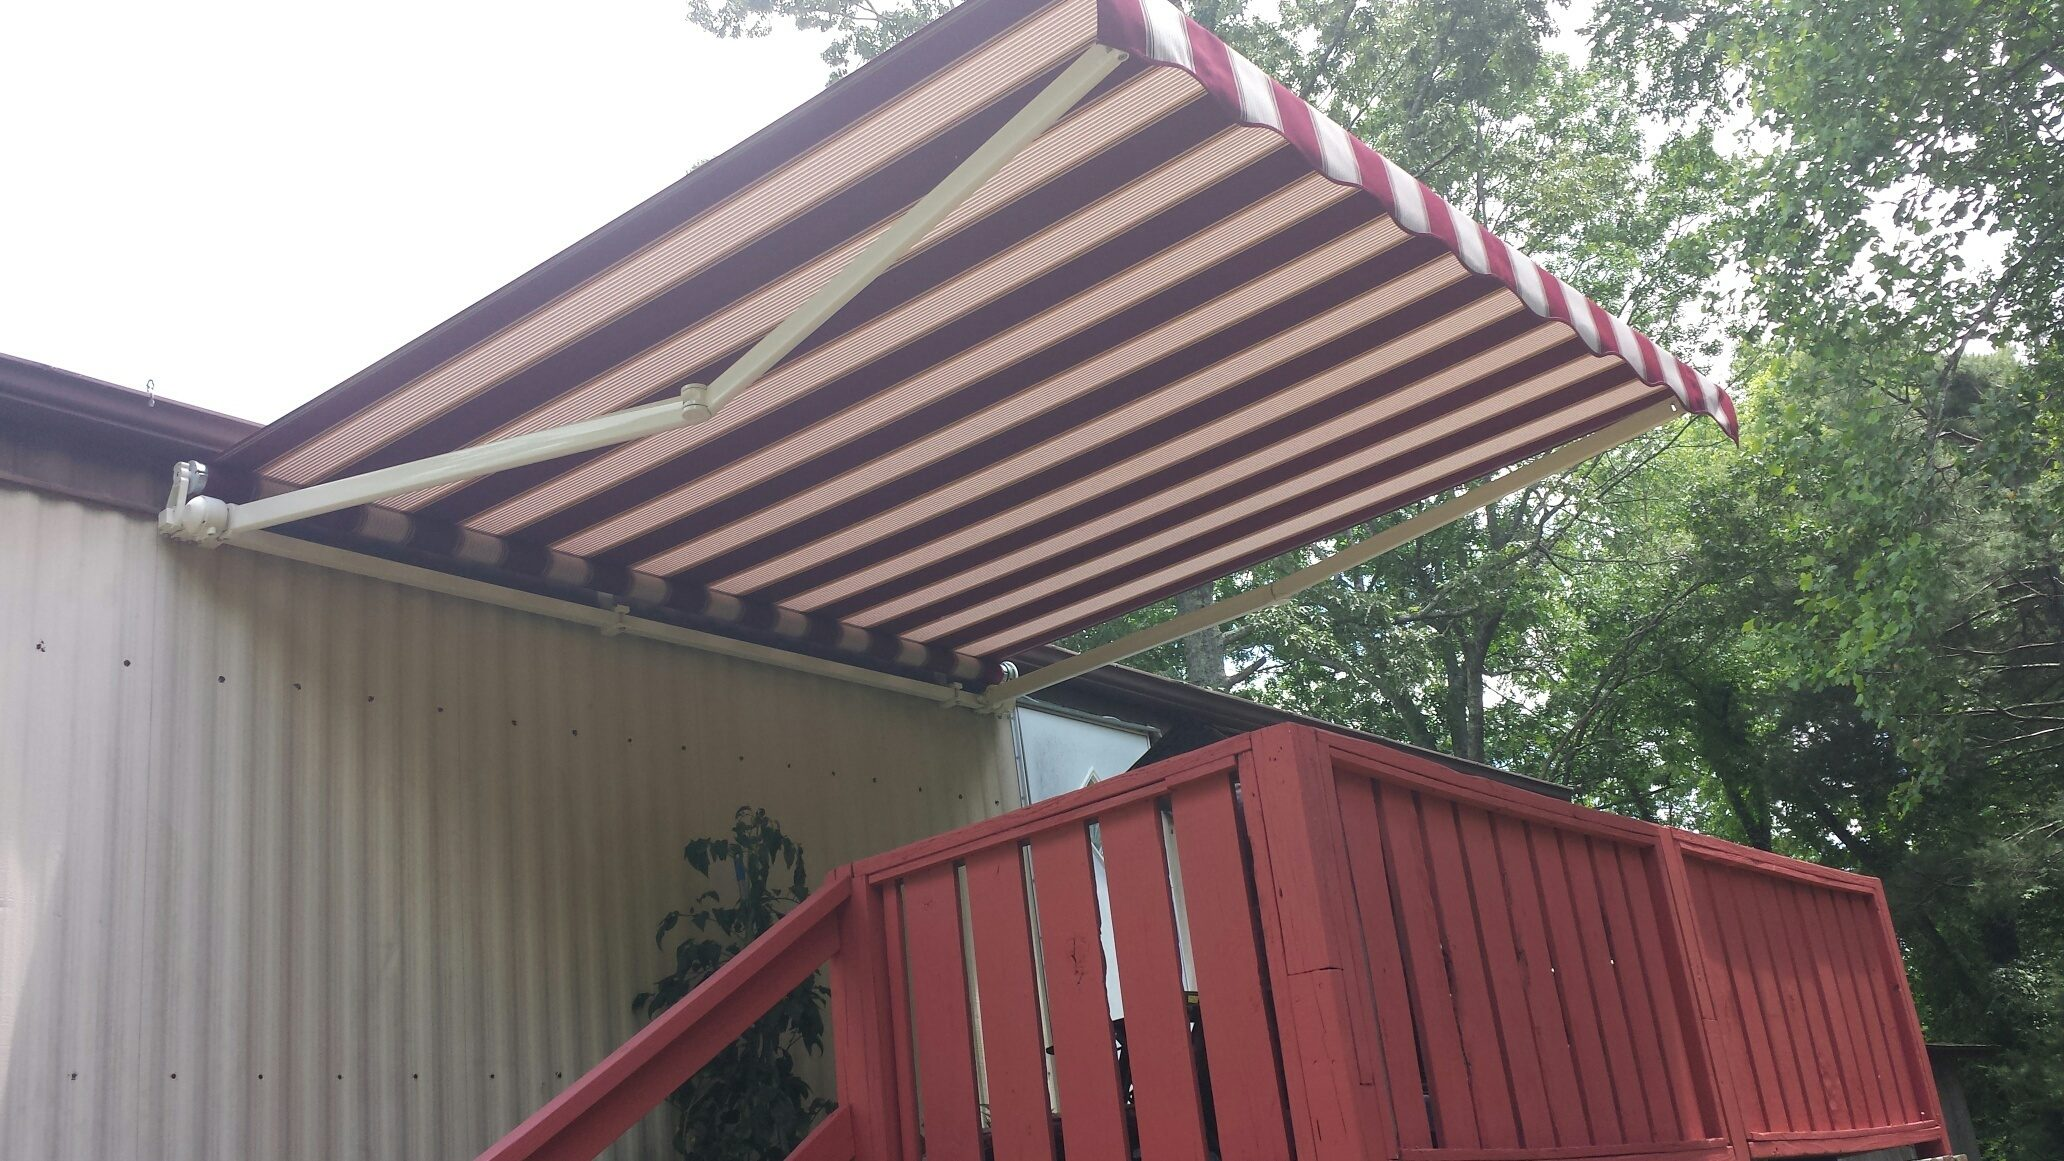 Top 541 Reviews And Complaints About Sunsetter Awnings